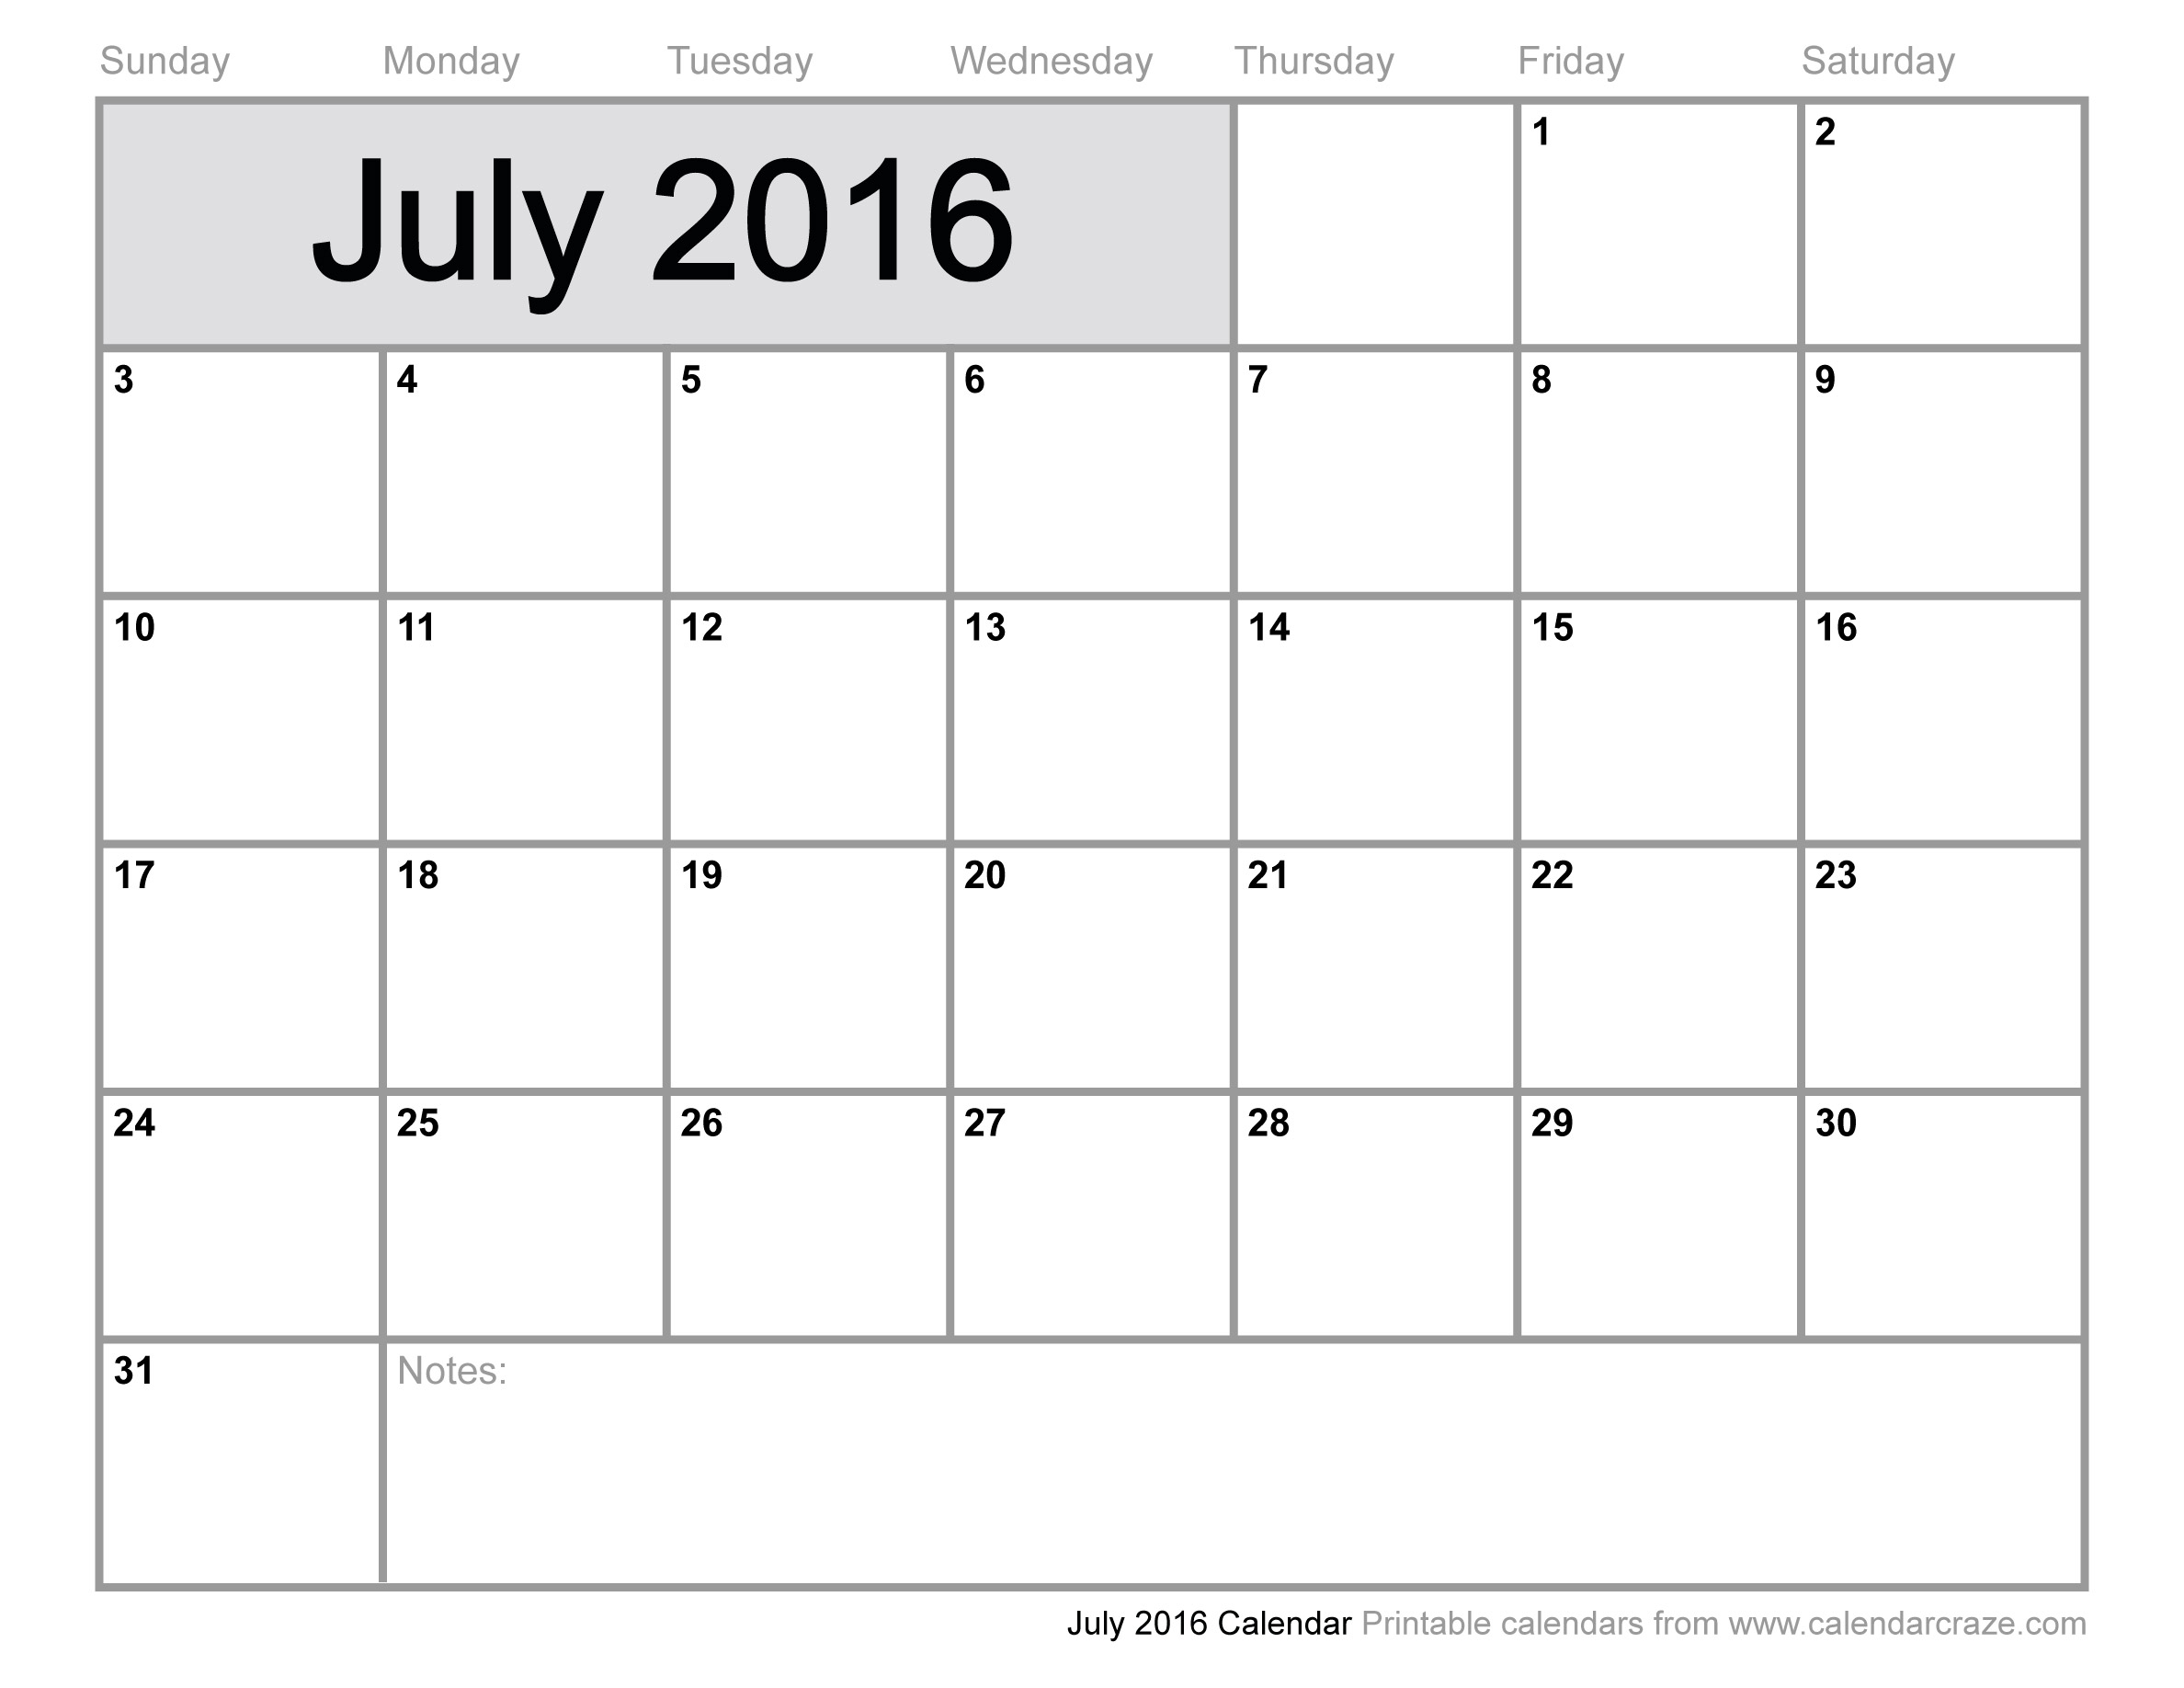 4 Images of July 2016 Calendar Printable Free